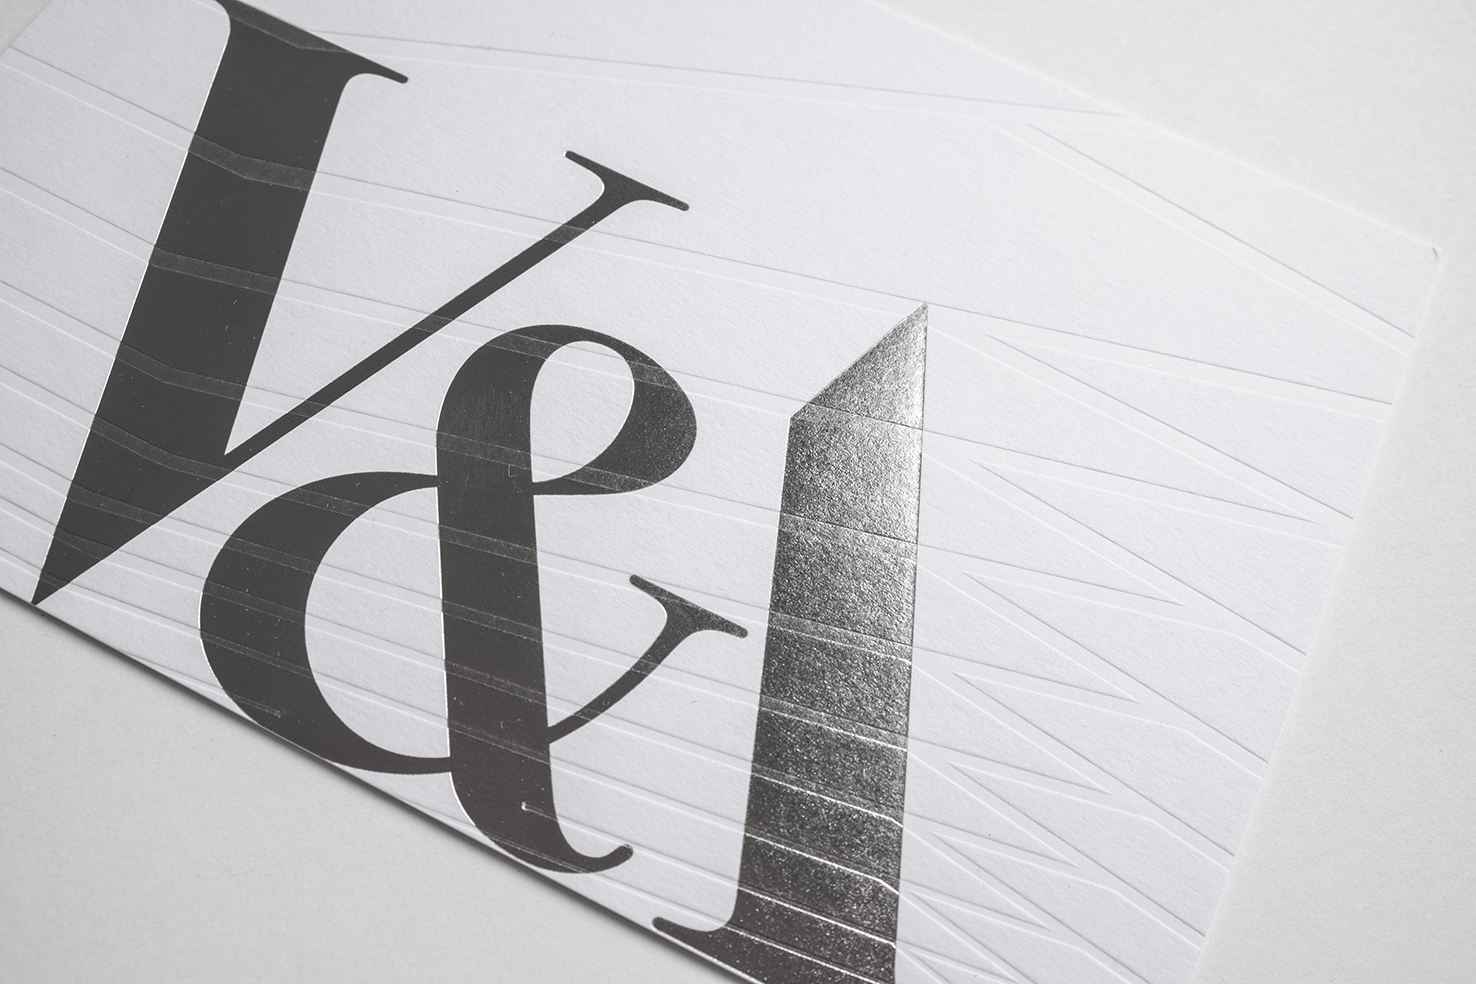 Victoria and Albert Museum  Opening invitation, 2017  The V&A commissioned Margot Lombaert Studio to design invitations for two events relating to the opening of their major capital build project, the Exhibition Road Quarter.  The two invitations are a graphic celebration of their new building. One invitation represents the porcelain-tiled courtyard while the second one takes its lines from the geometric ceiling of the Sainsbury Gallery.